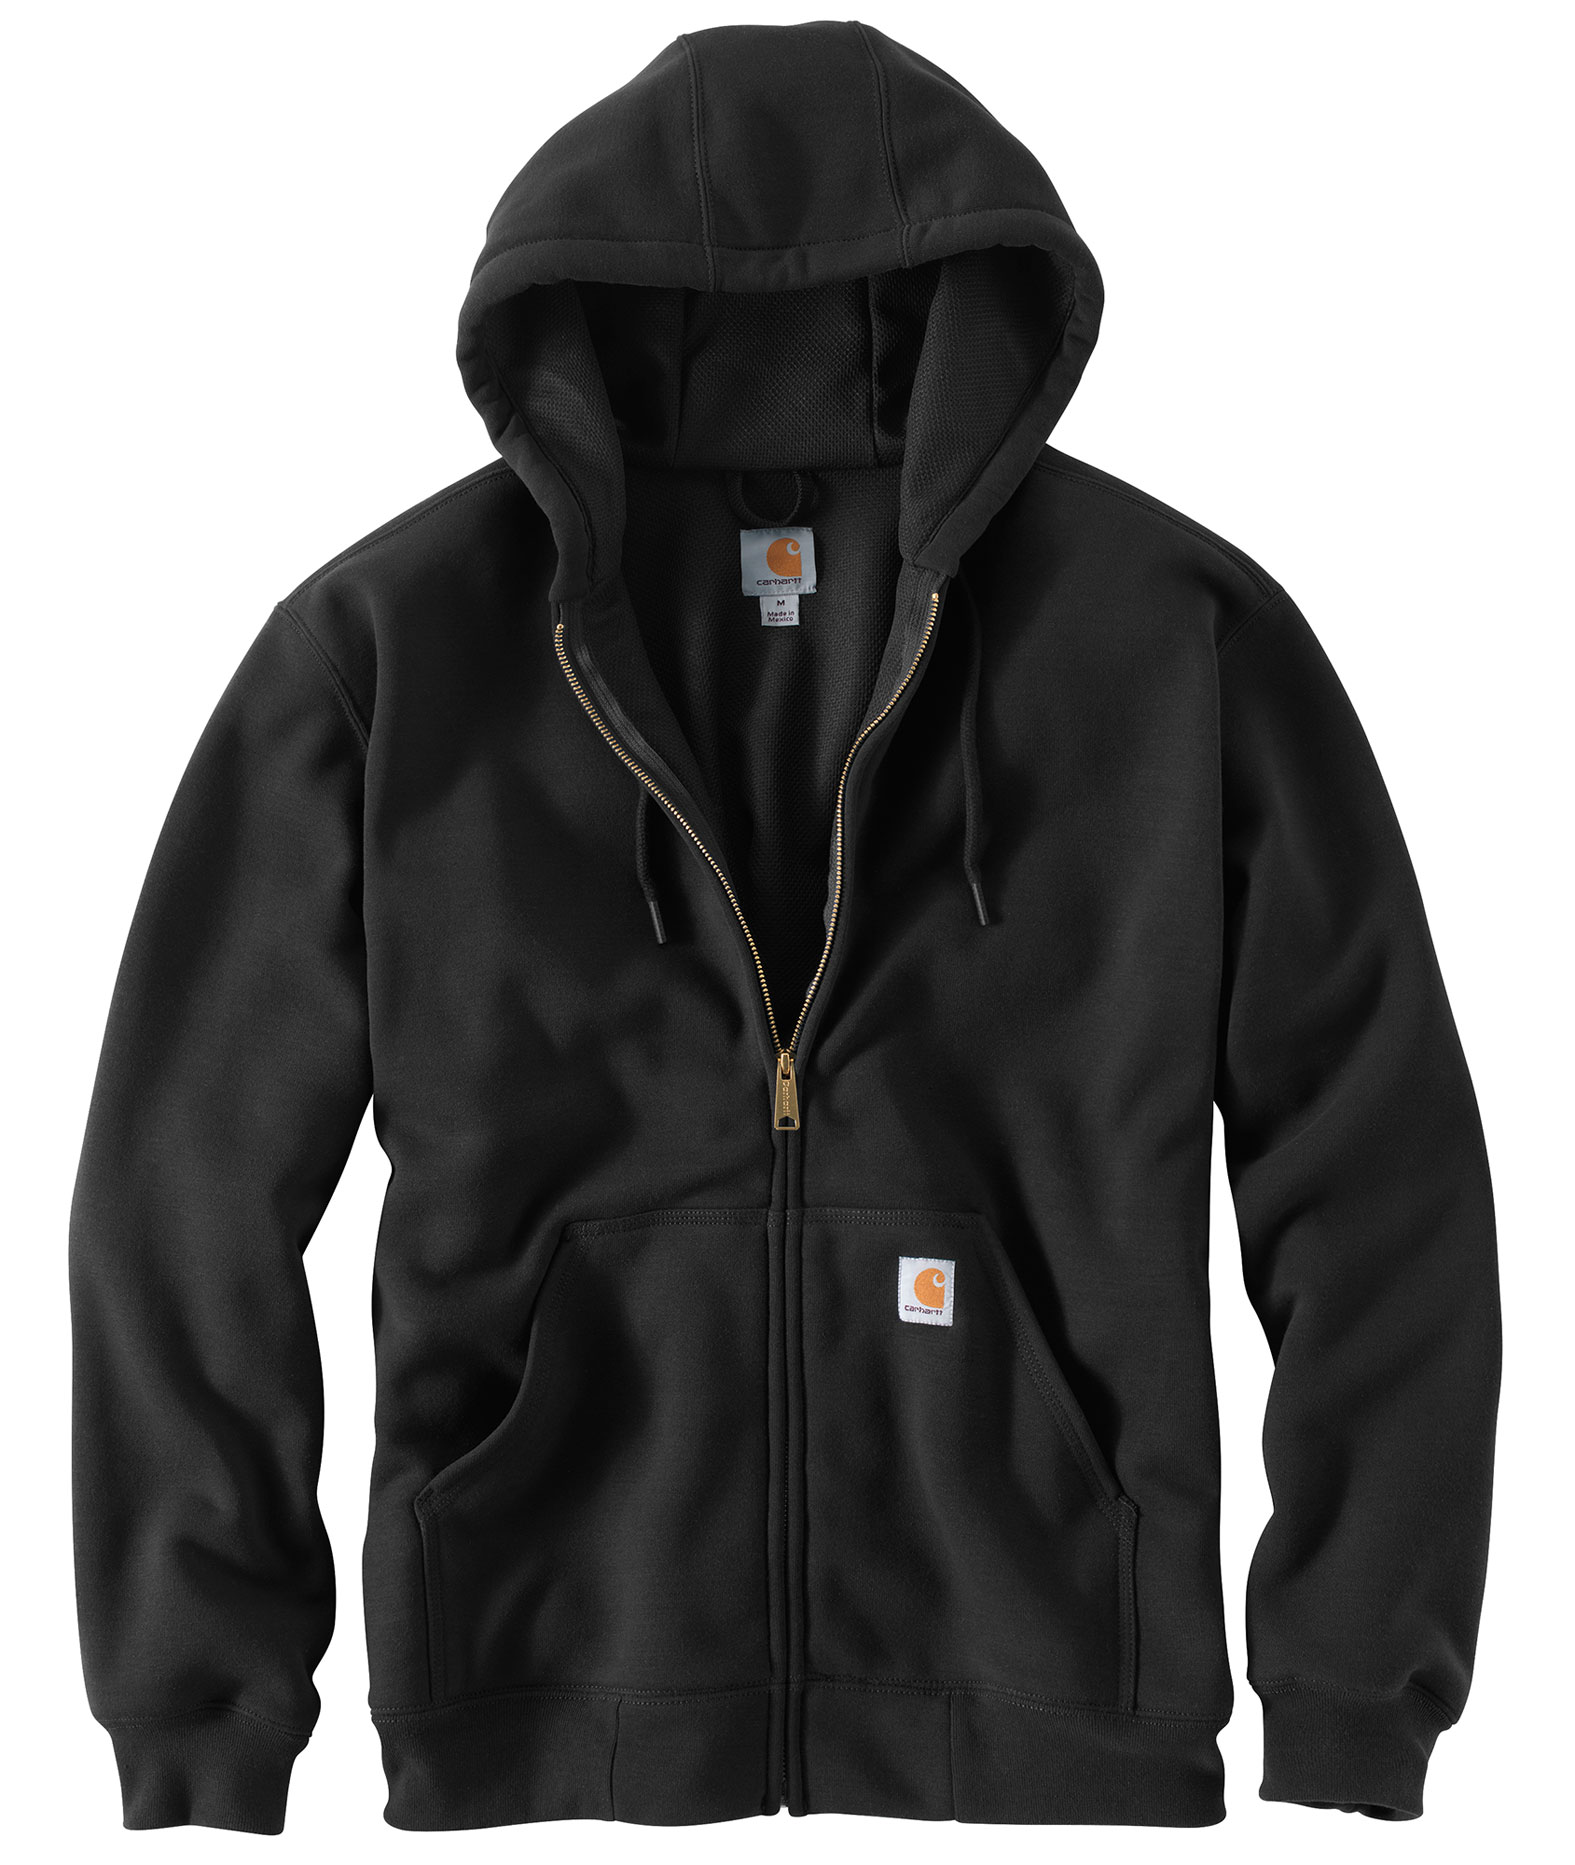 Rutland Thermal Lined Hooded Sweatshirt by Carhartt